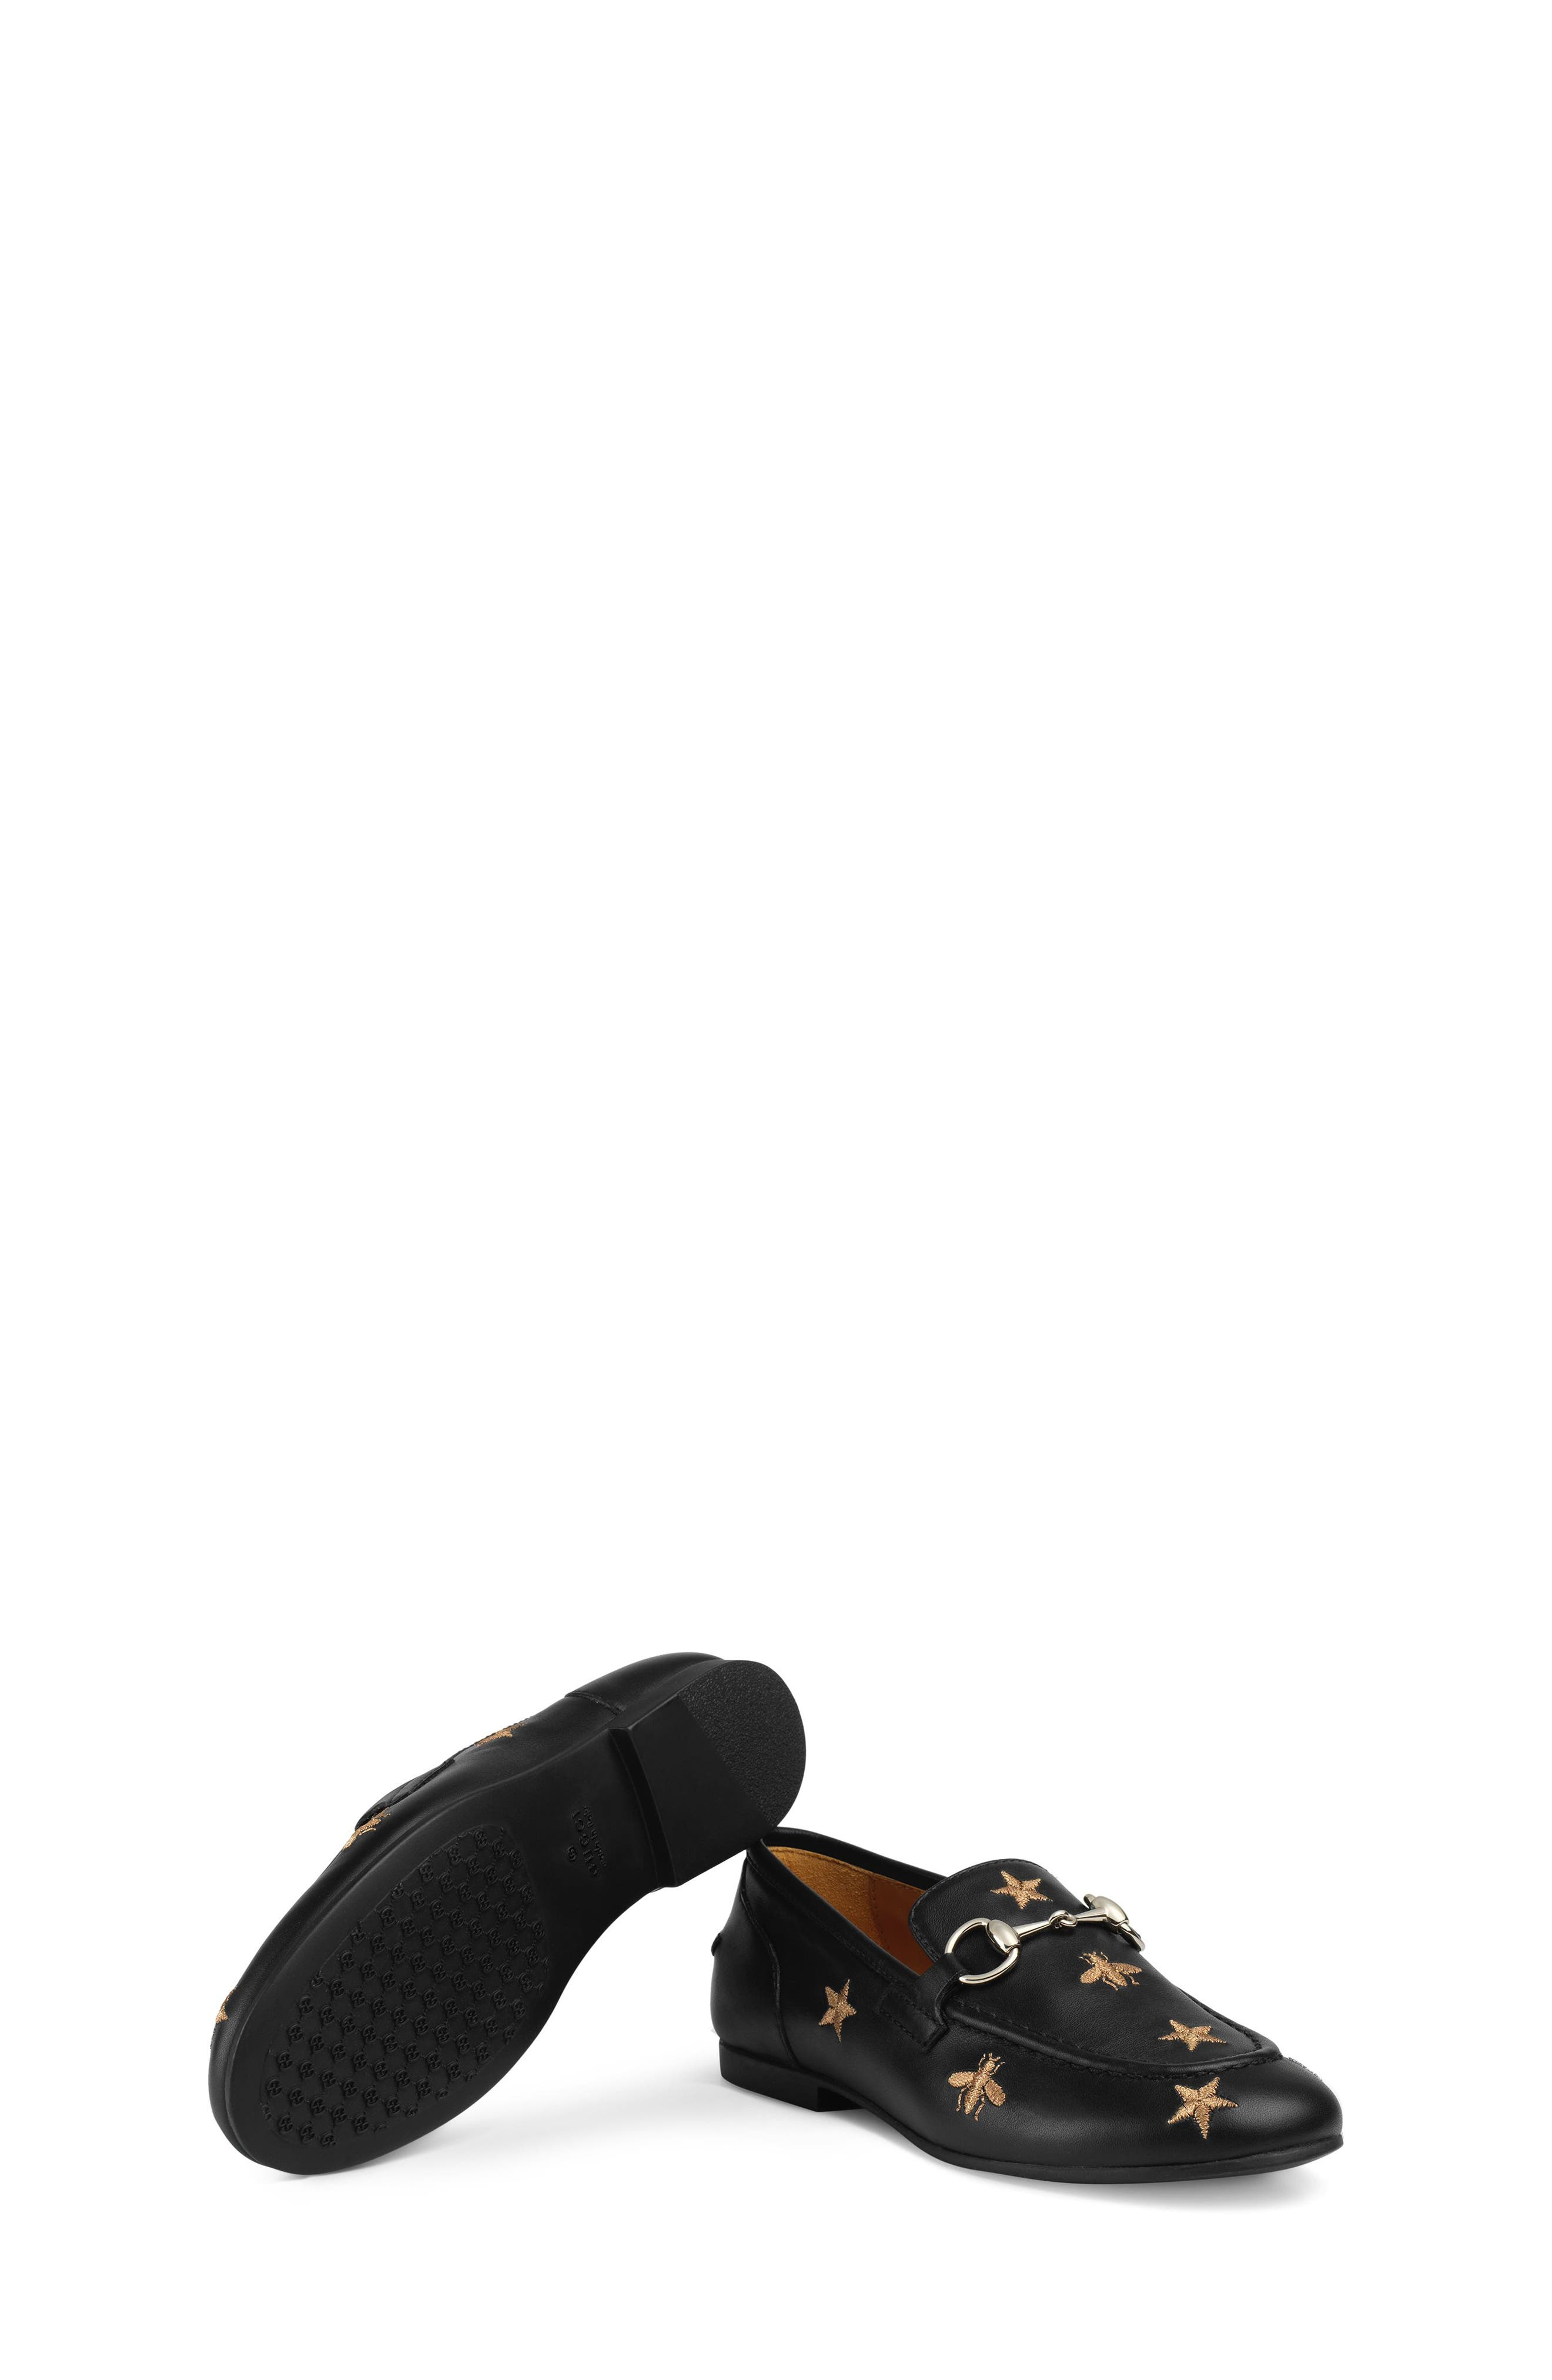 Jordaan Bit Loafer,                             Alternate thumbnail 4, color,                             BLACK